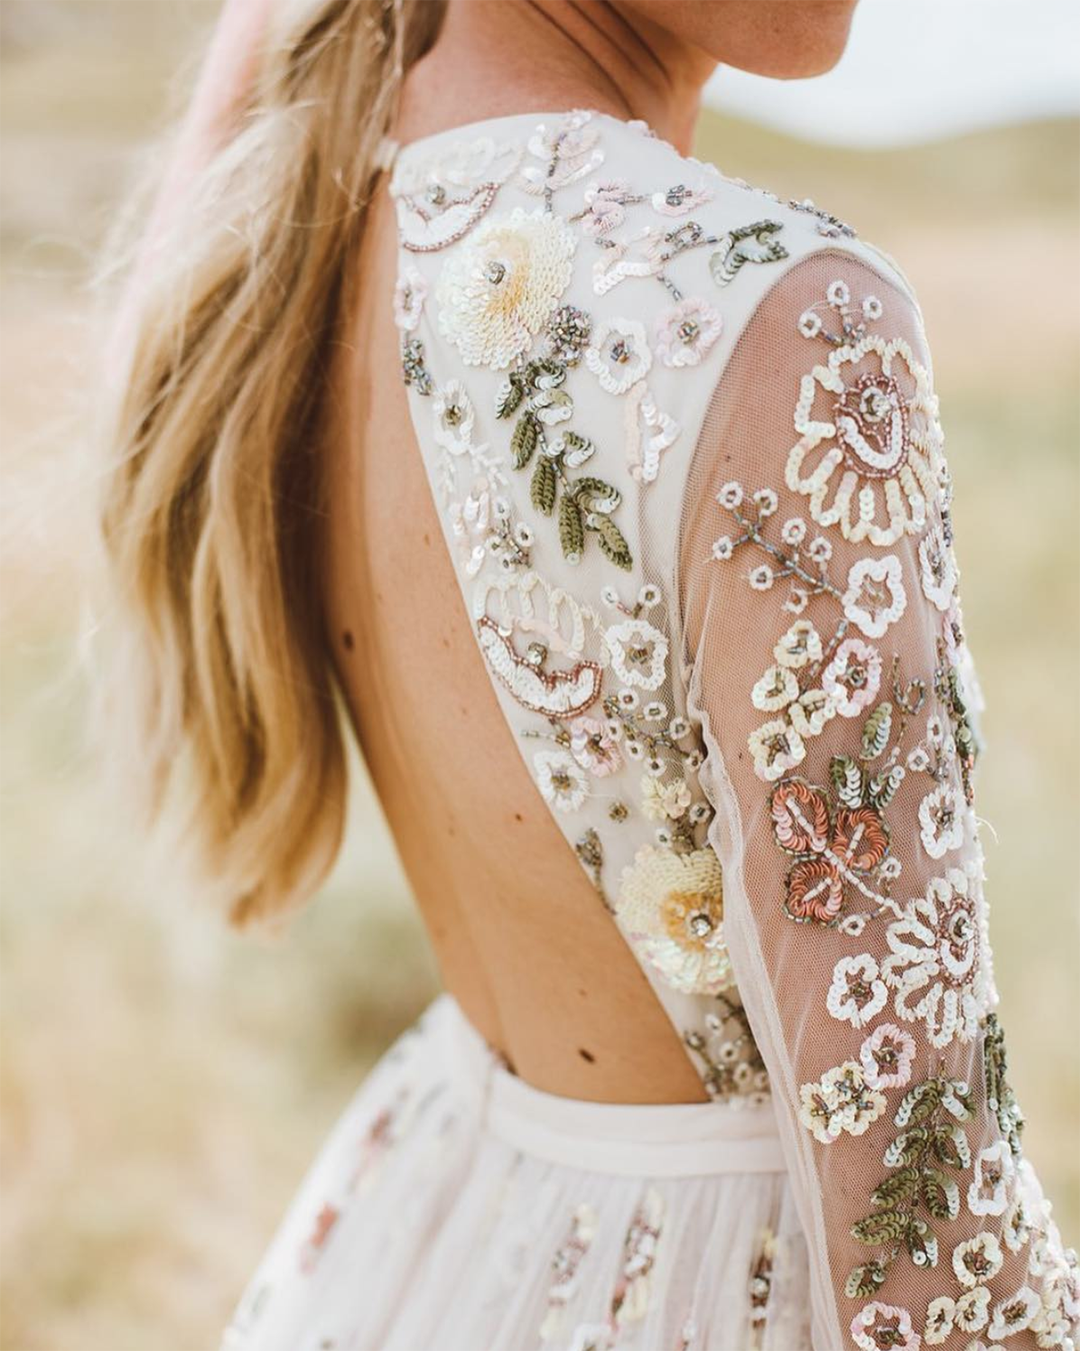 The bohochic style of dressing draws on various bohemian and folk craft influences.